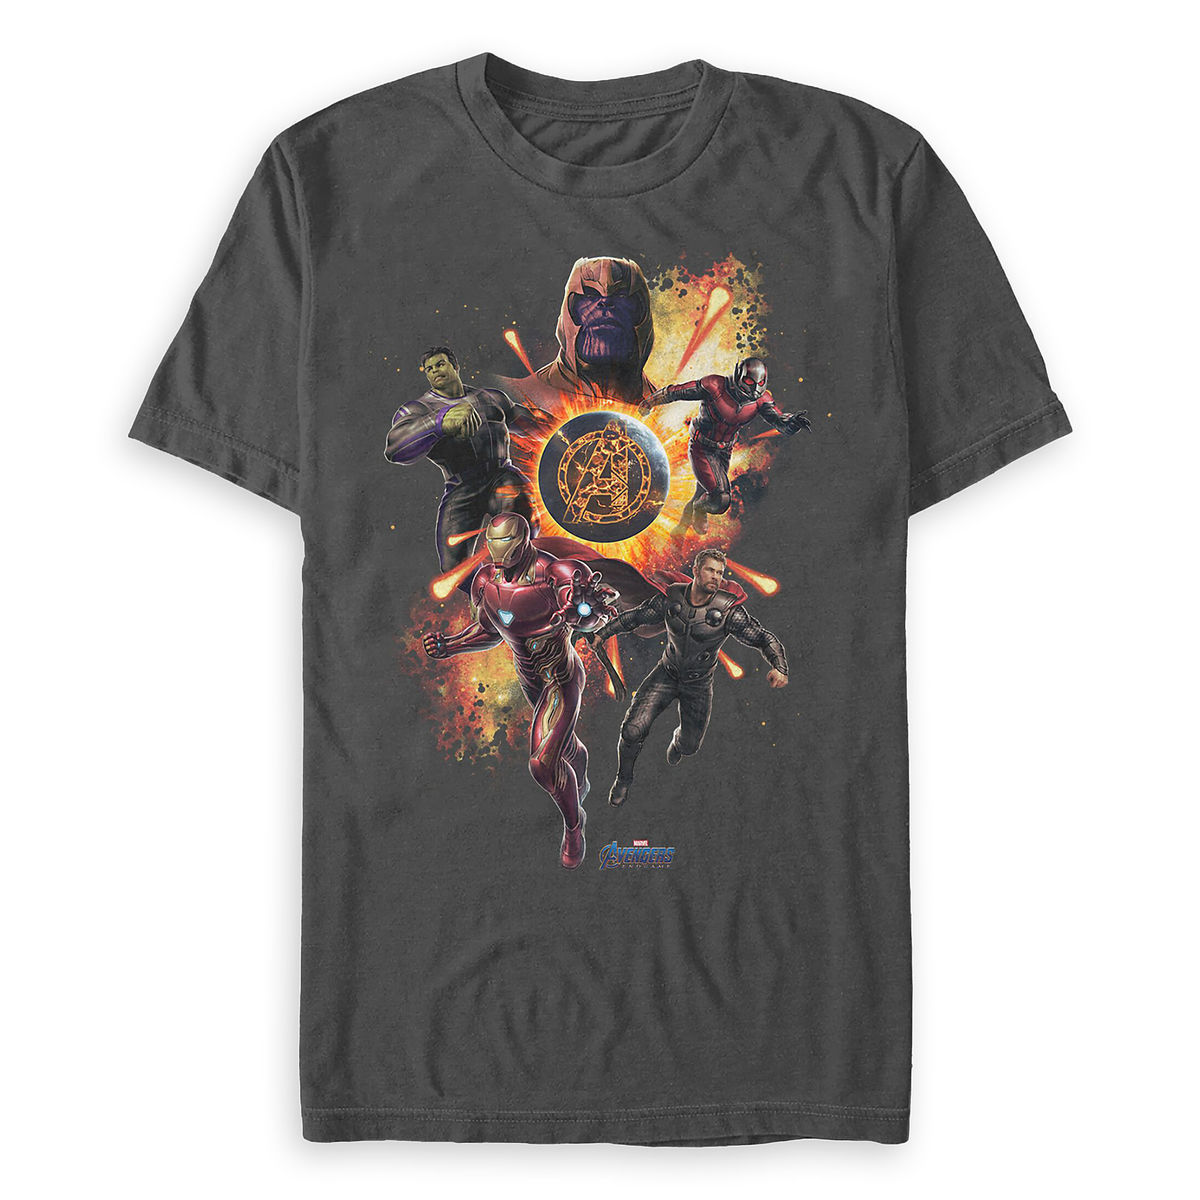 23b9be32af4 Product Image of Marvel s Avengers  Endgame T-Shirt for Adults   1